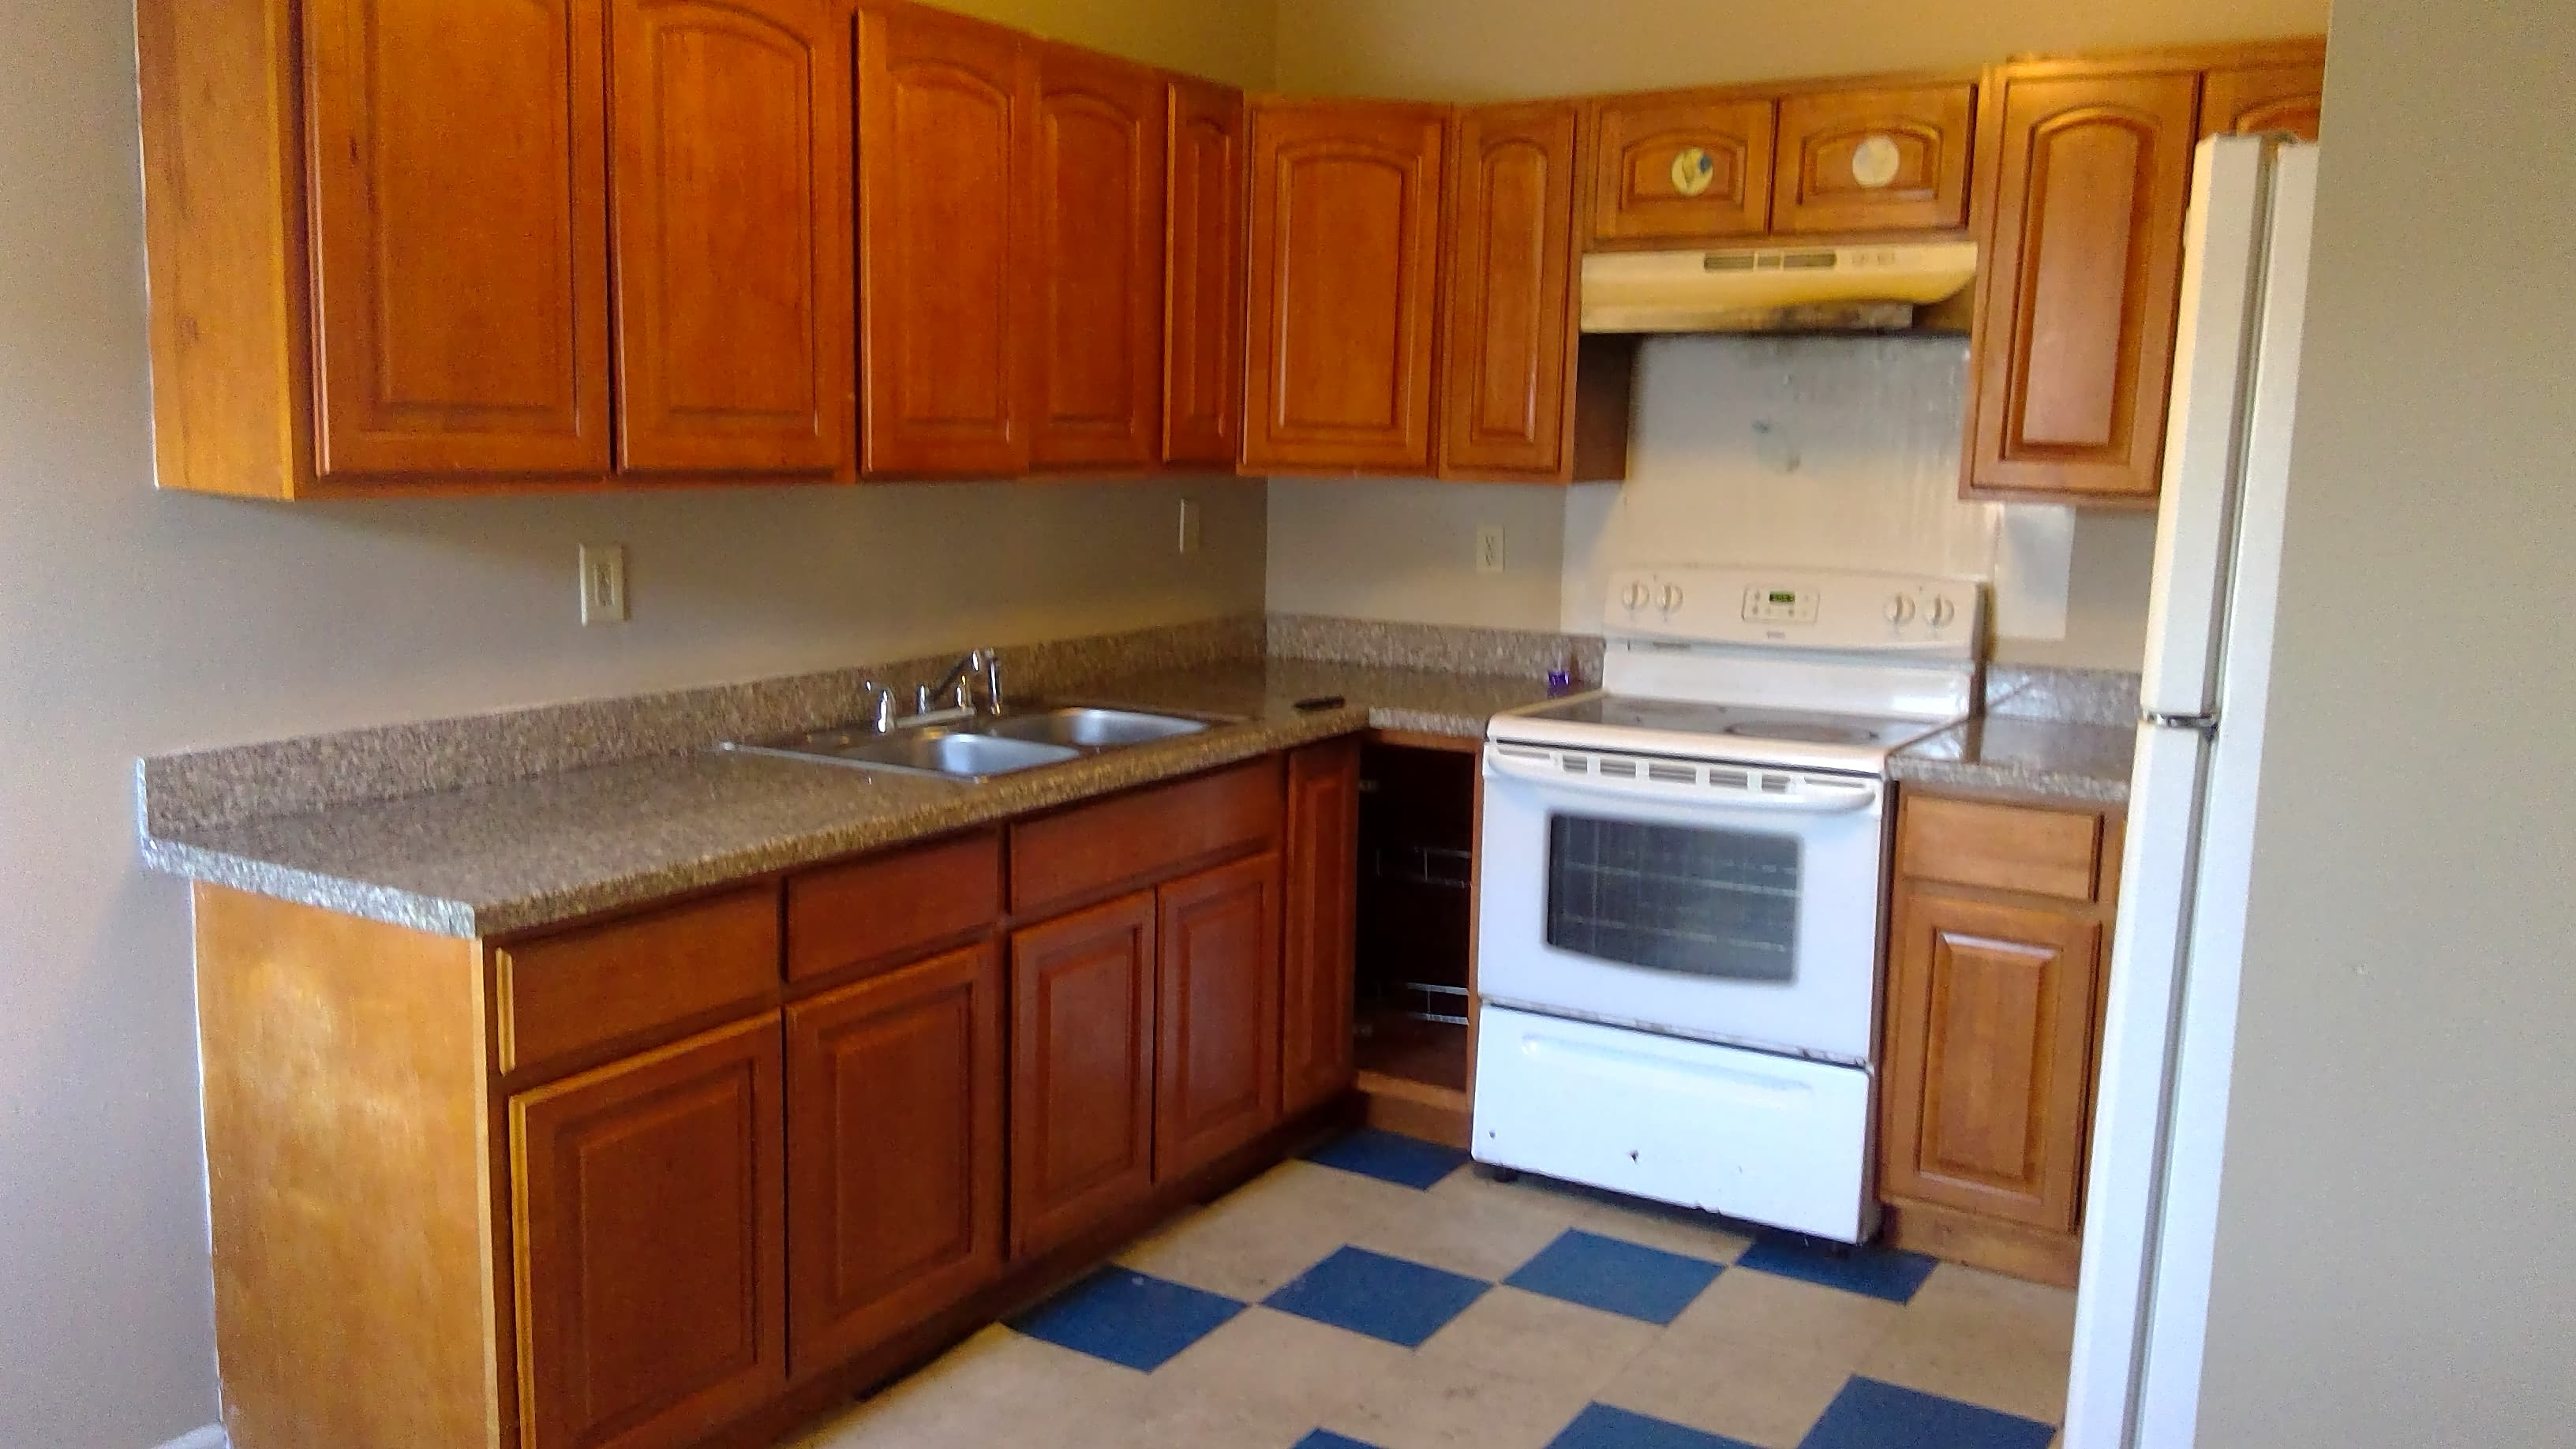 Condo for Rent in New Orleans